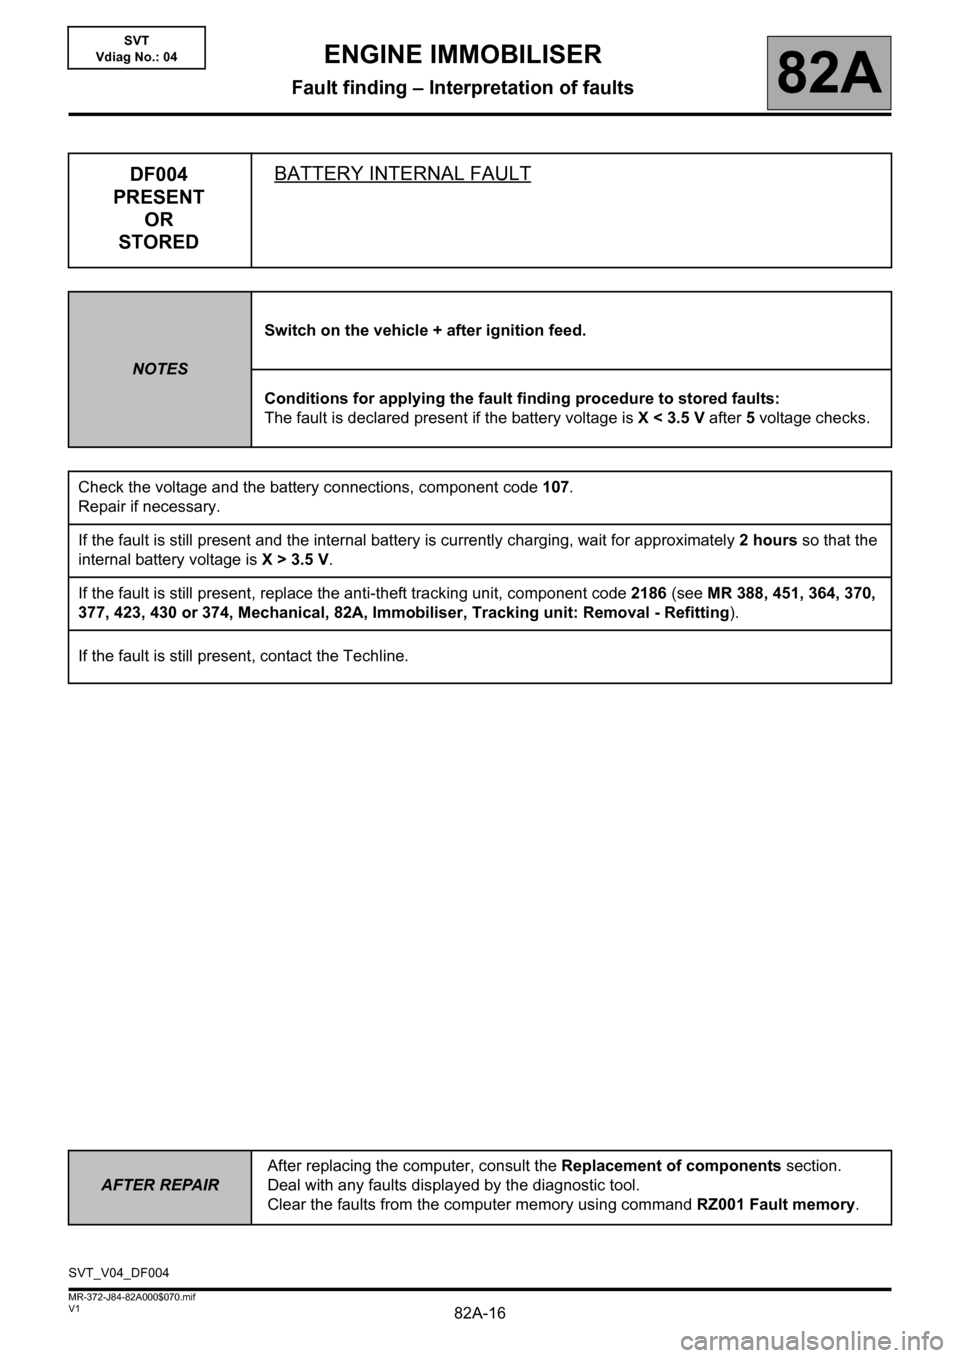 RENAULT SCENIC 2013 J95 / 3.G Electrical Equipment Immobiliser Workshop Manual, Page 16